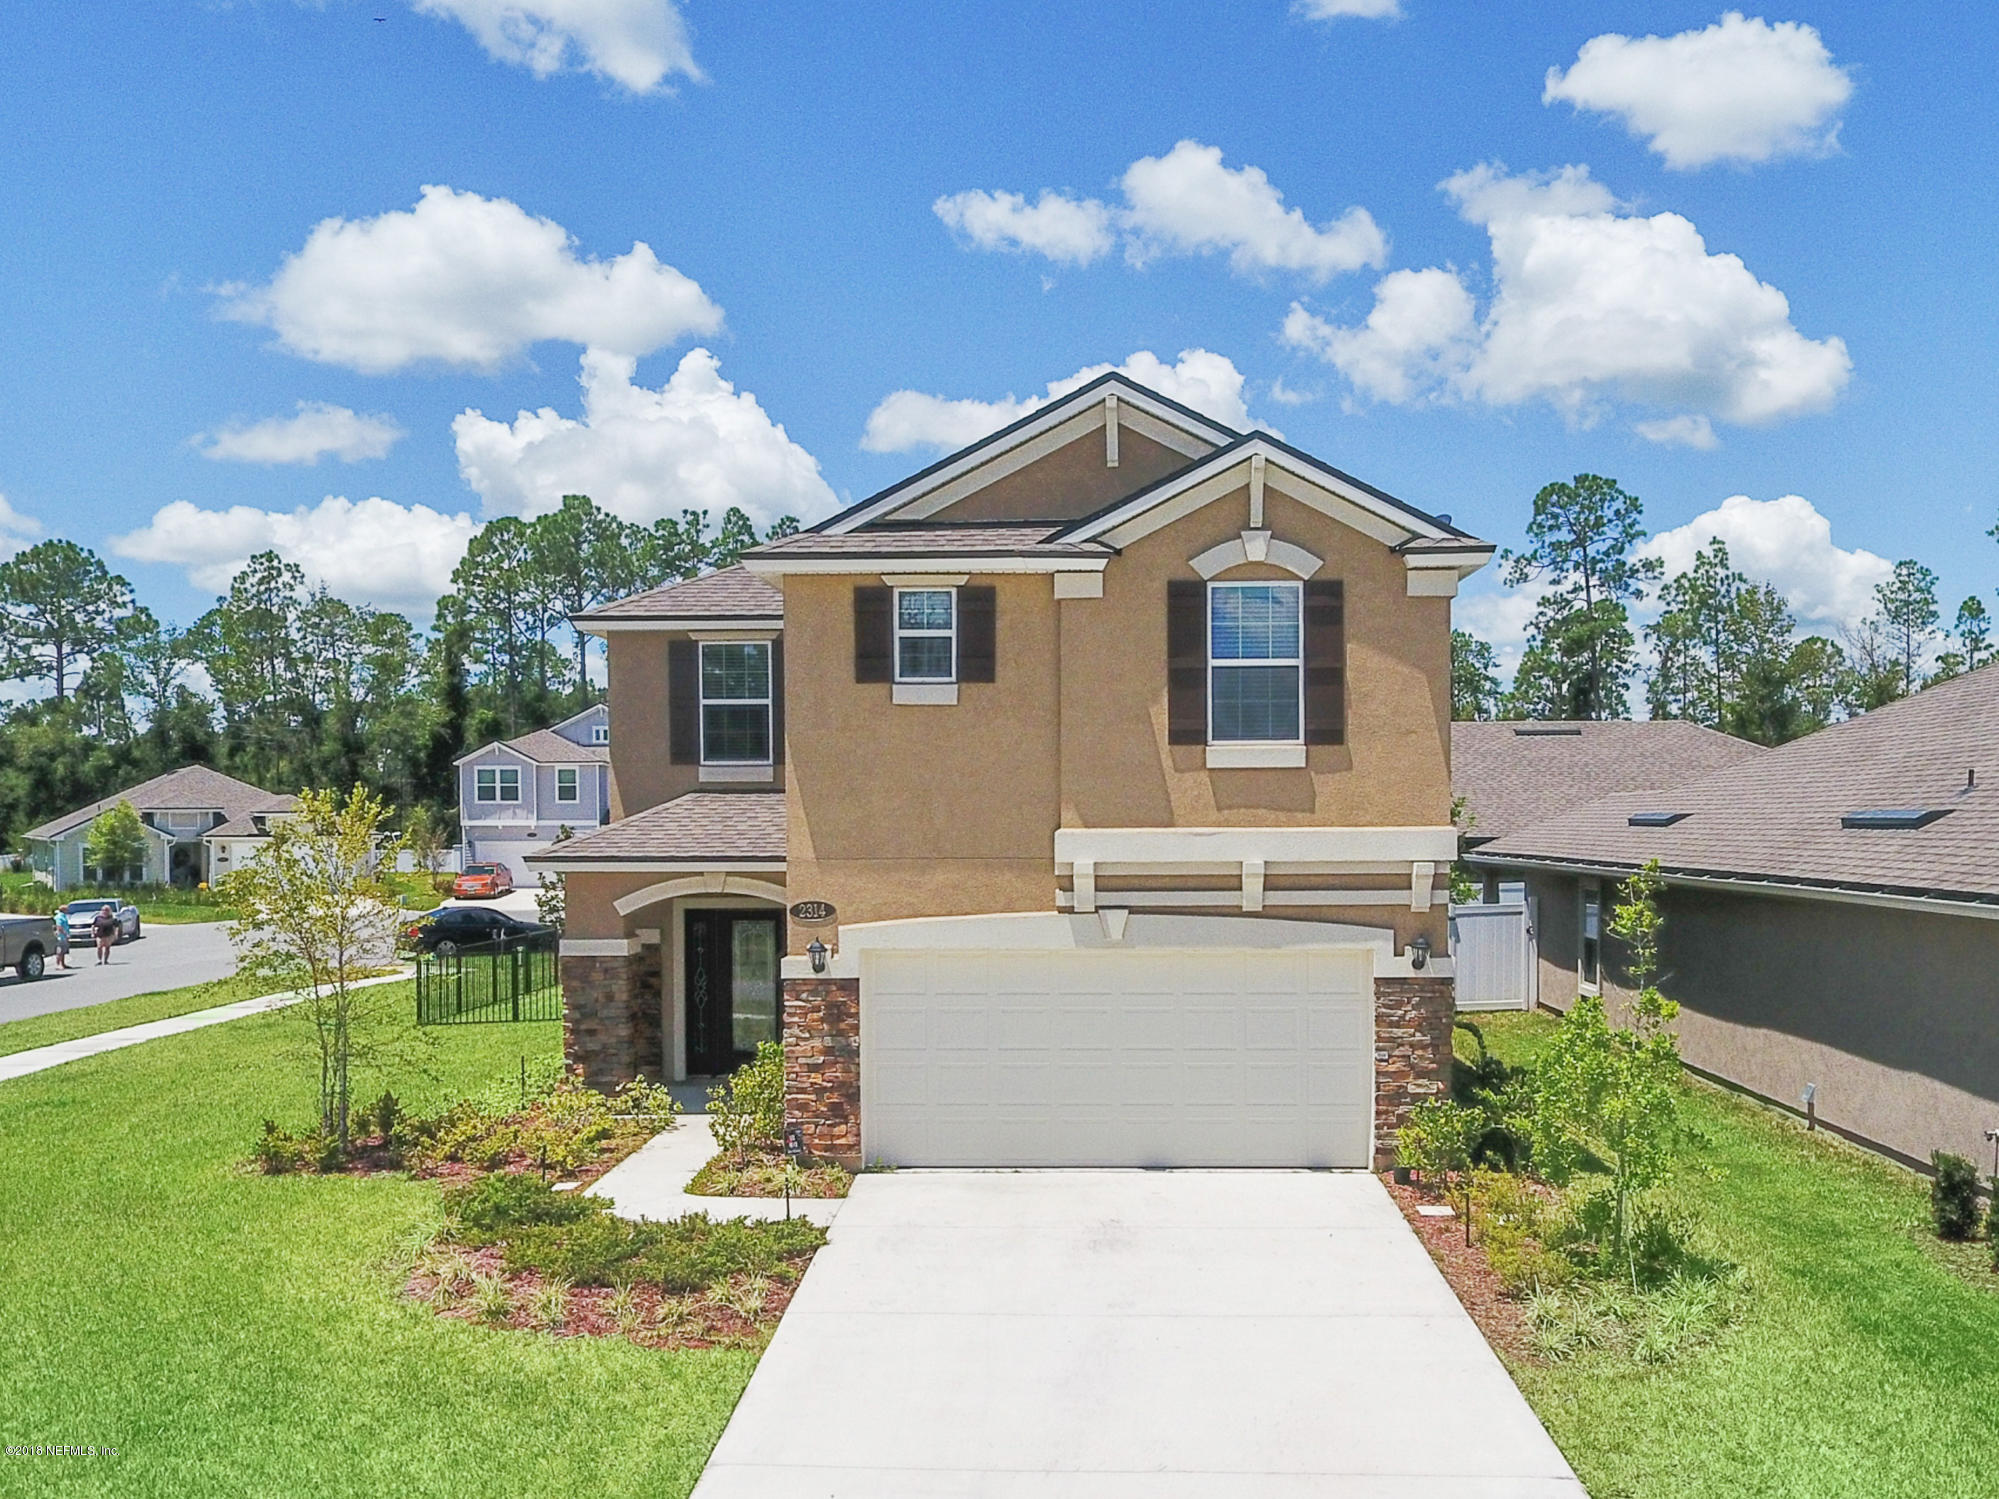 2314 EAGLE PERCH, FLEMING ISLAND, FLORIDA 32003, 4 Bedrooms Bedrooms, ,2 BathroomsBathrooms,Residential - single family,For sale,EAGLE PERCH,951141